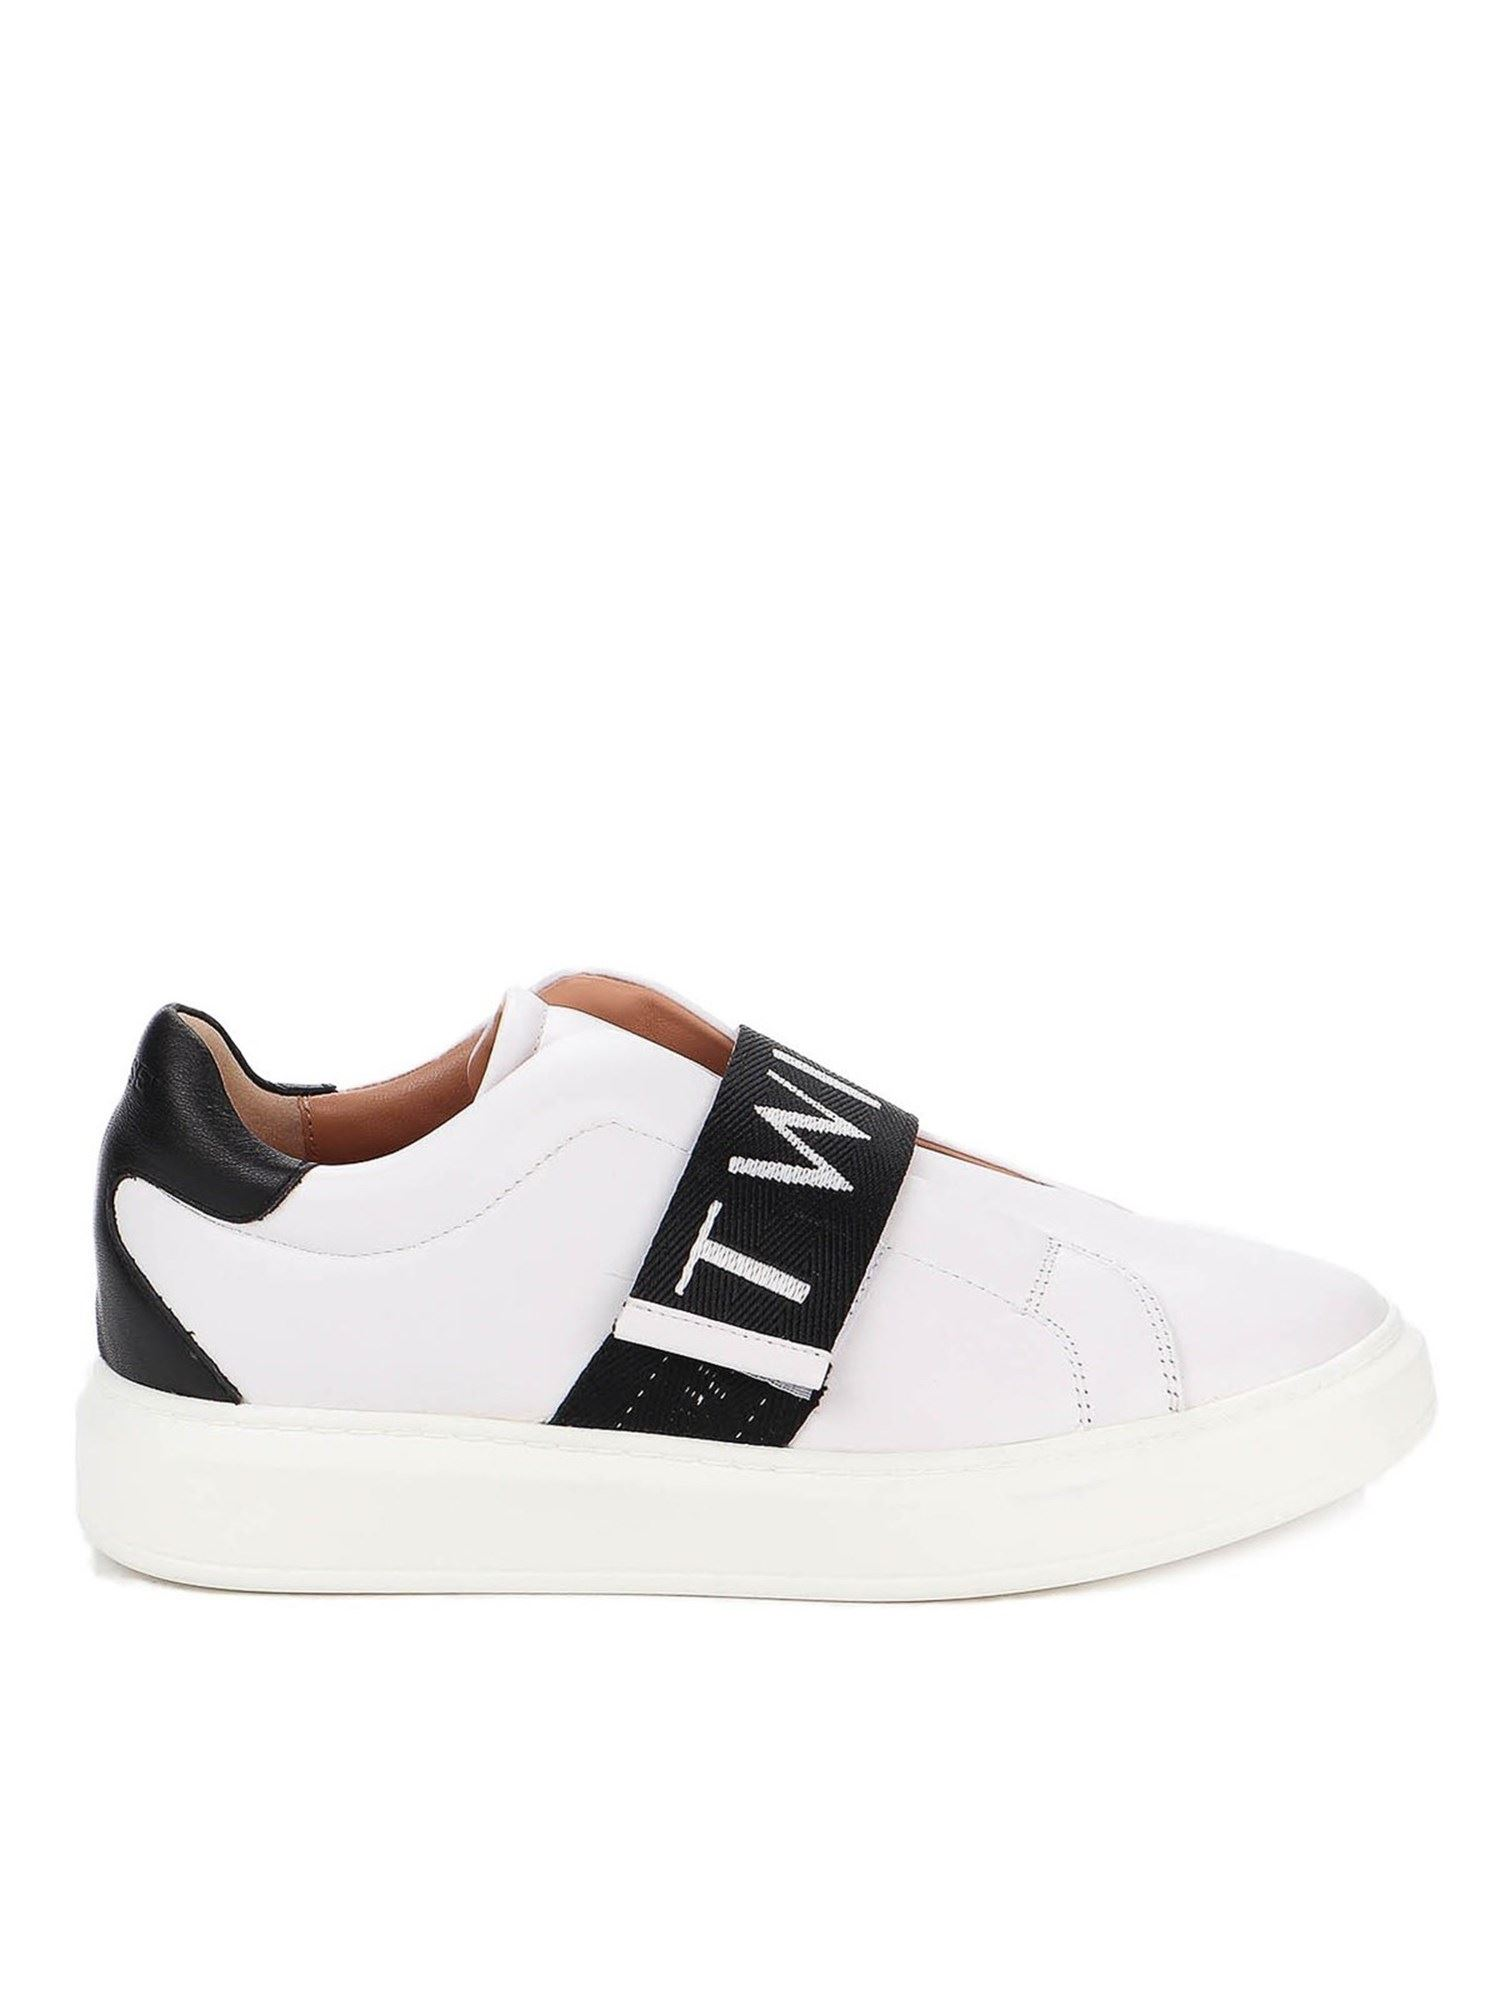 Twinset LOGO BAND SNEAKERS IN WHITE